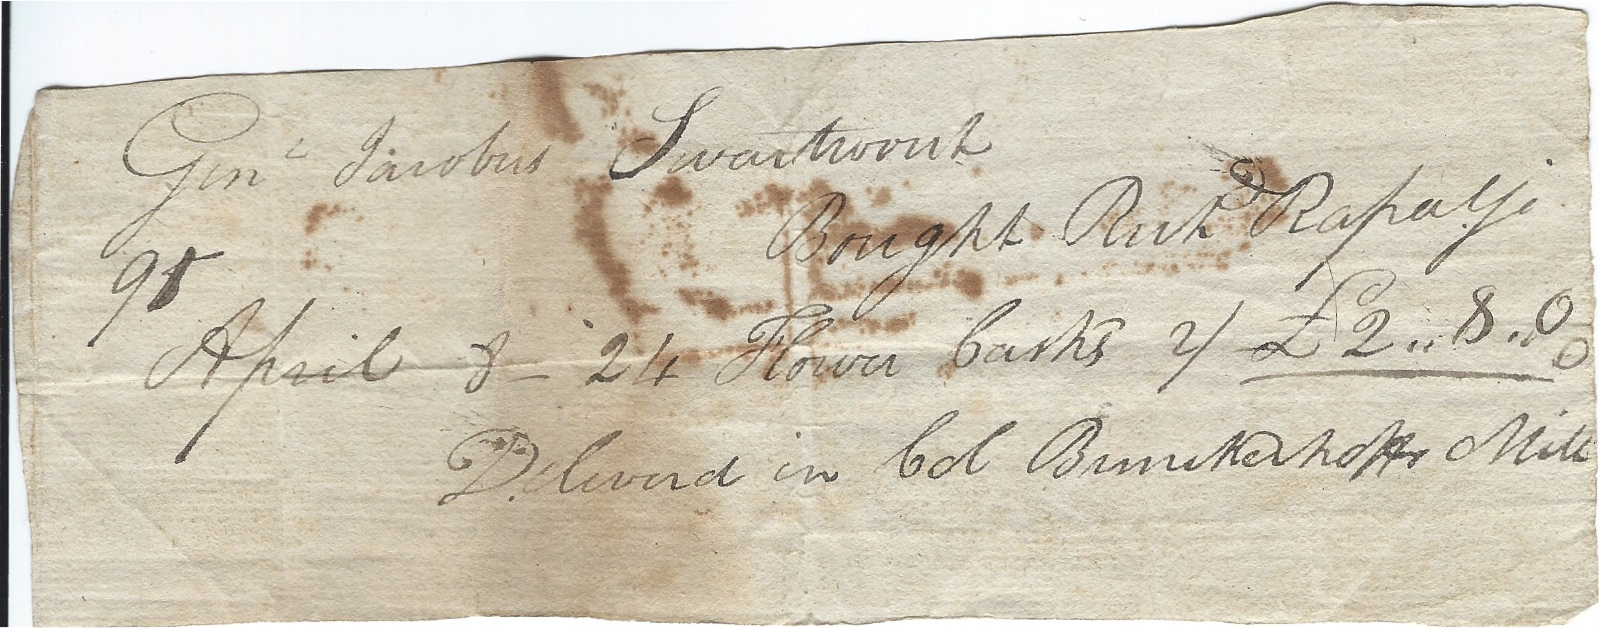 Swartwout Document 1824